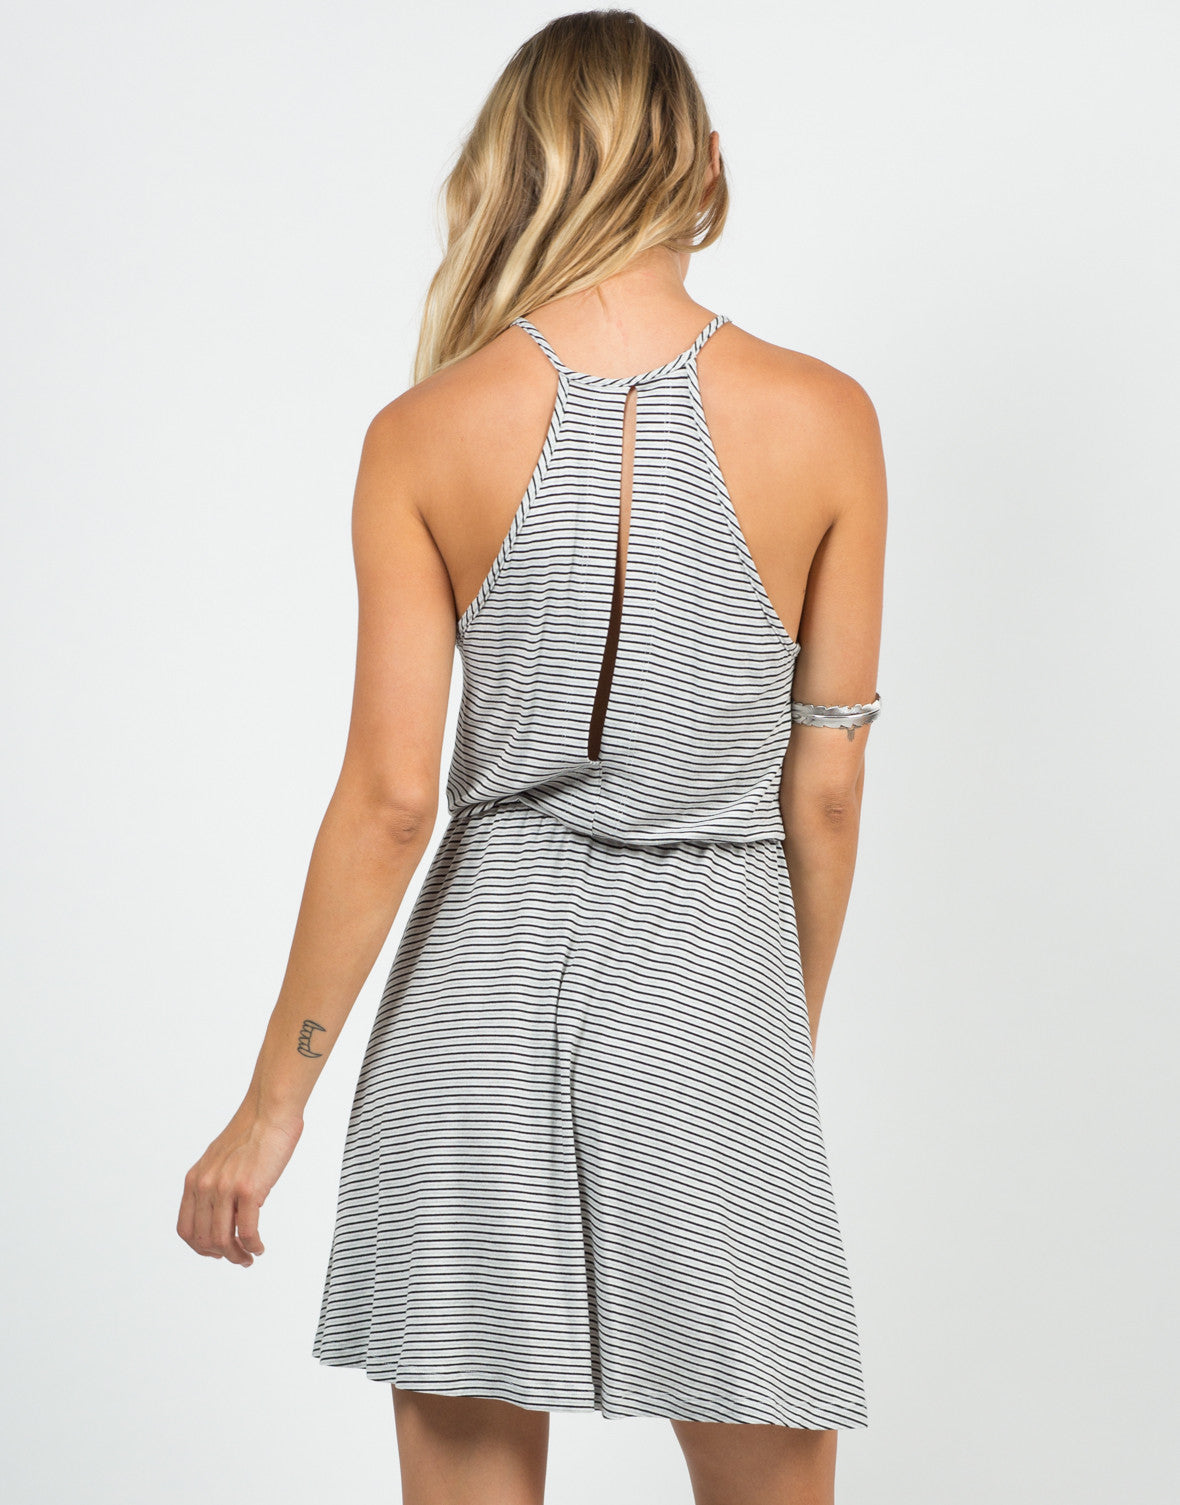 Back View of Striped Jersey Dress